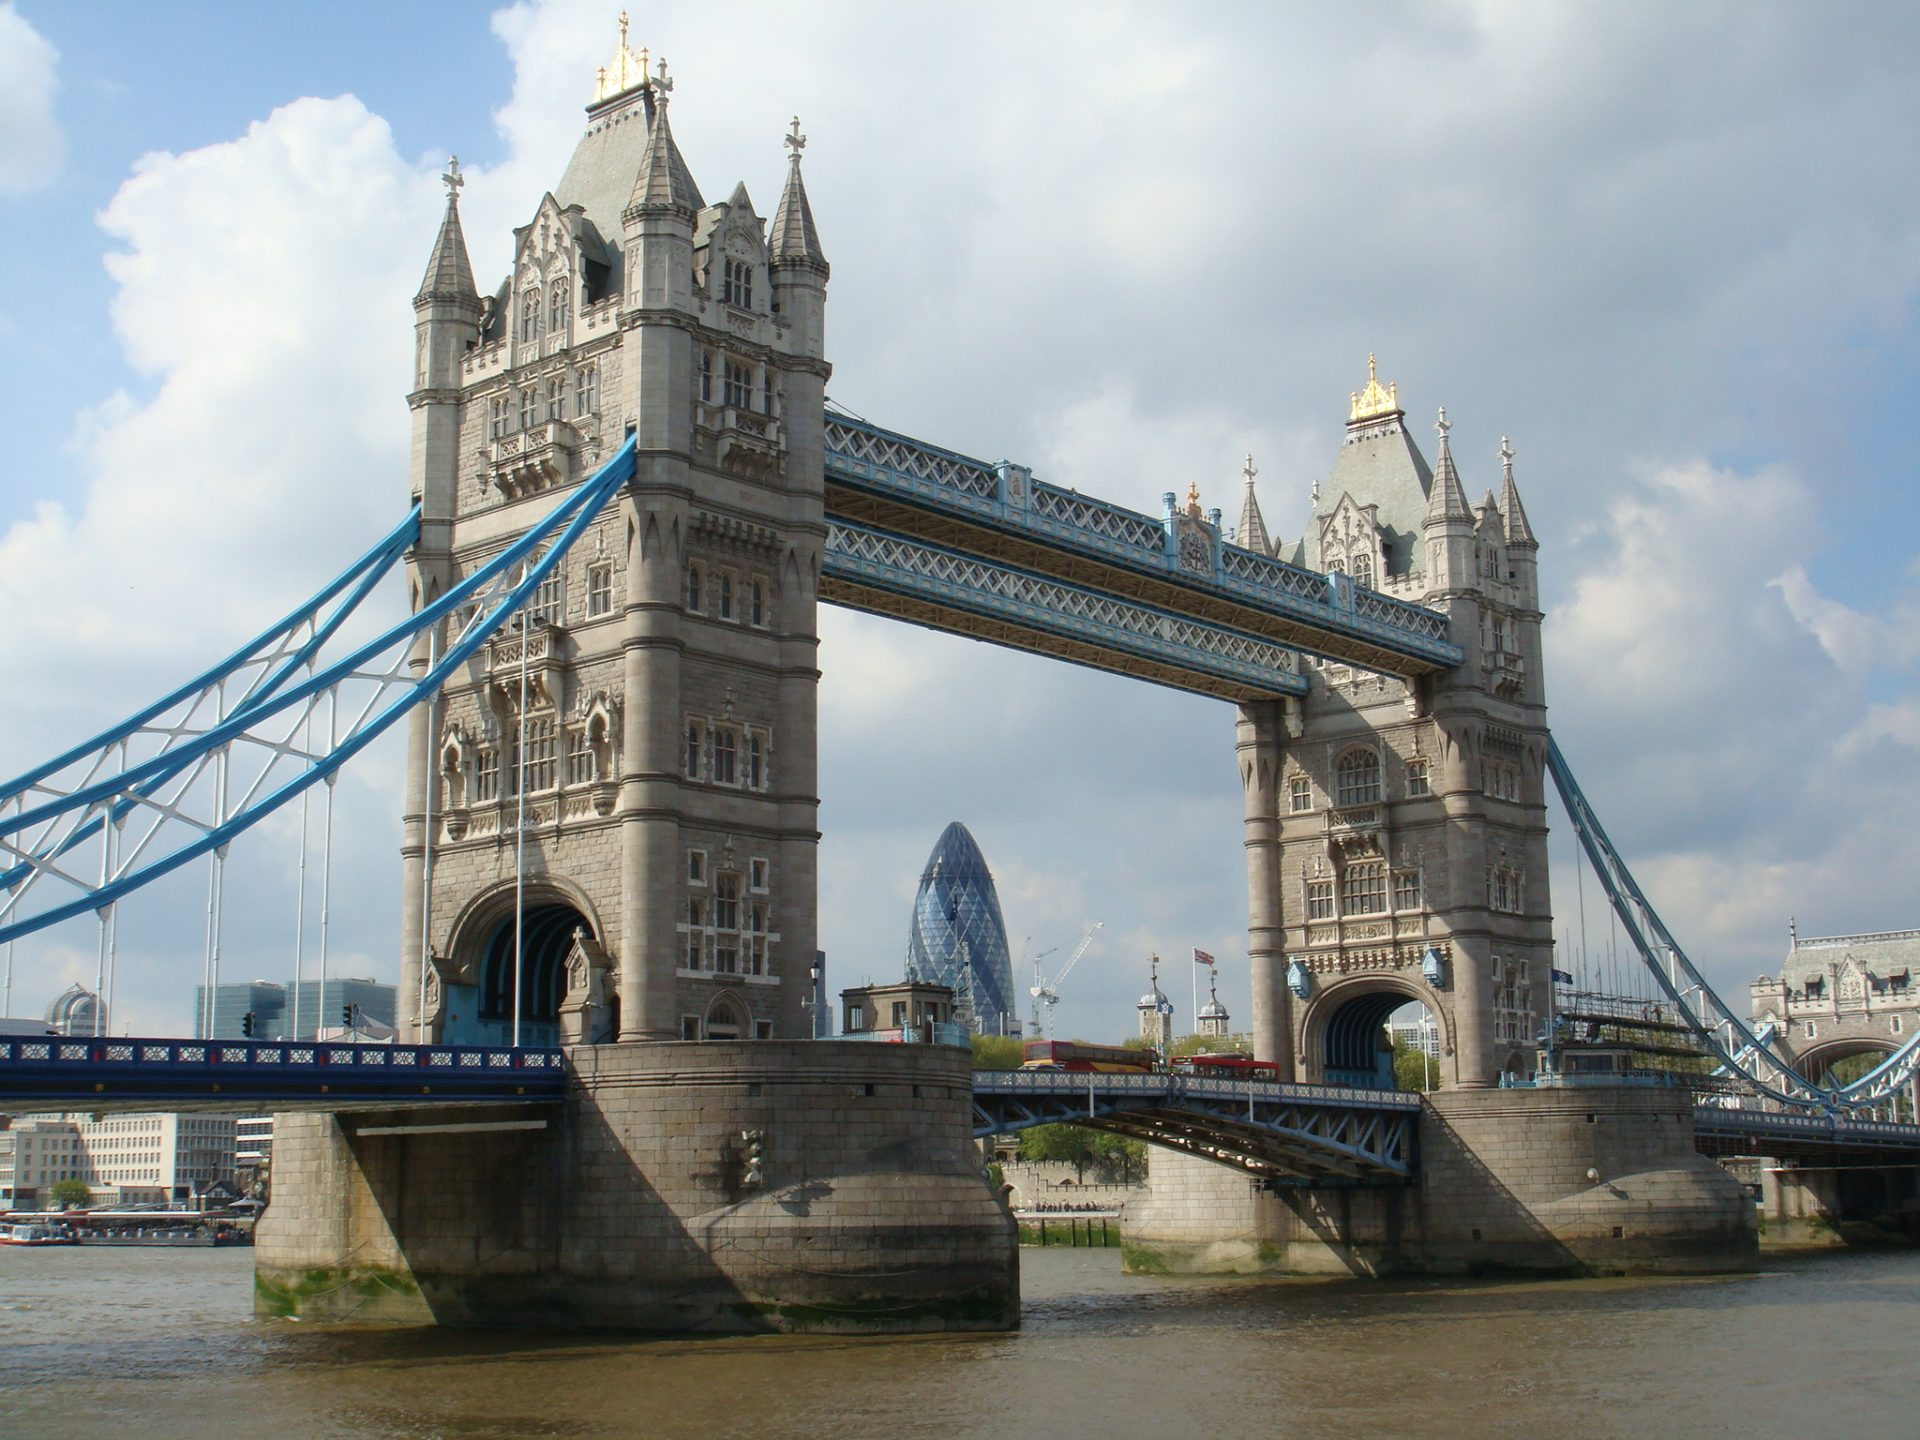 Well, this is just a pretty picture of the Tower of London Bridge.  But we know that others have been abused there.